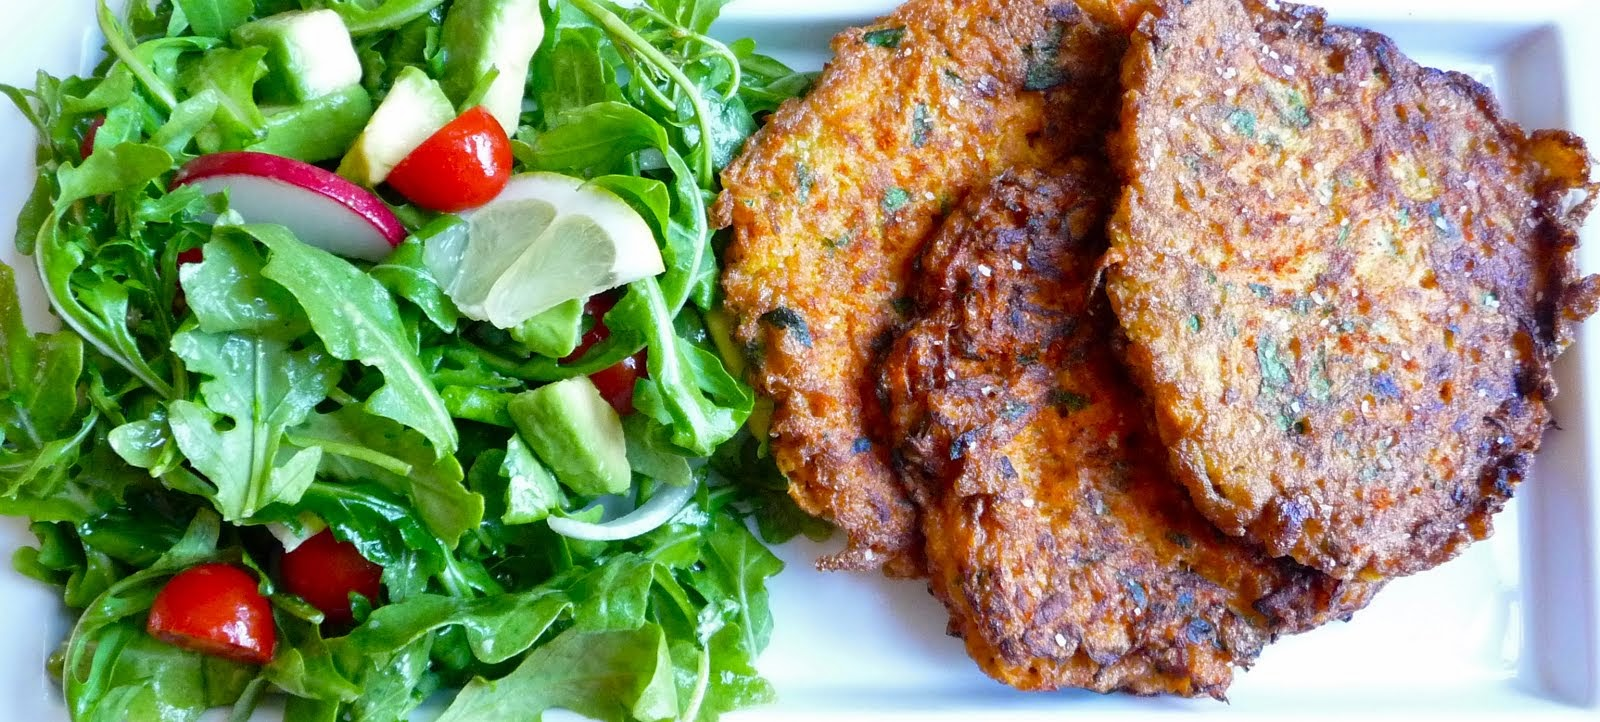 Delicious Carrot Pancakes with a Lemony Arugula Salad